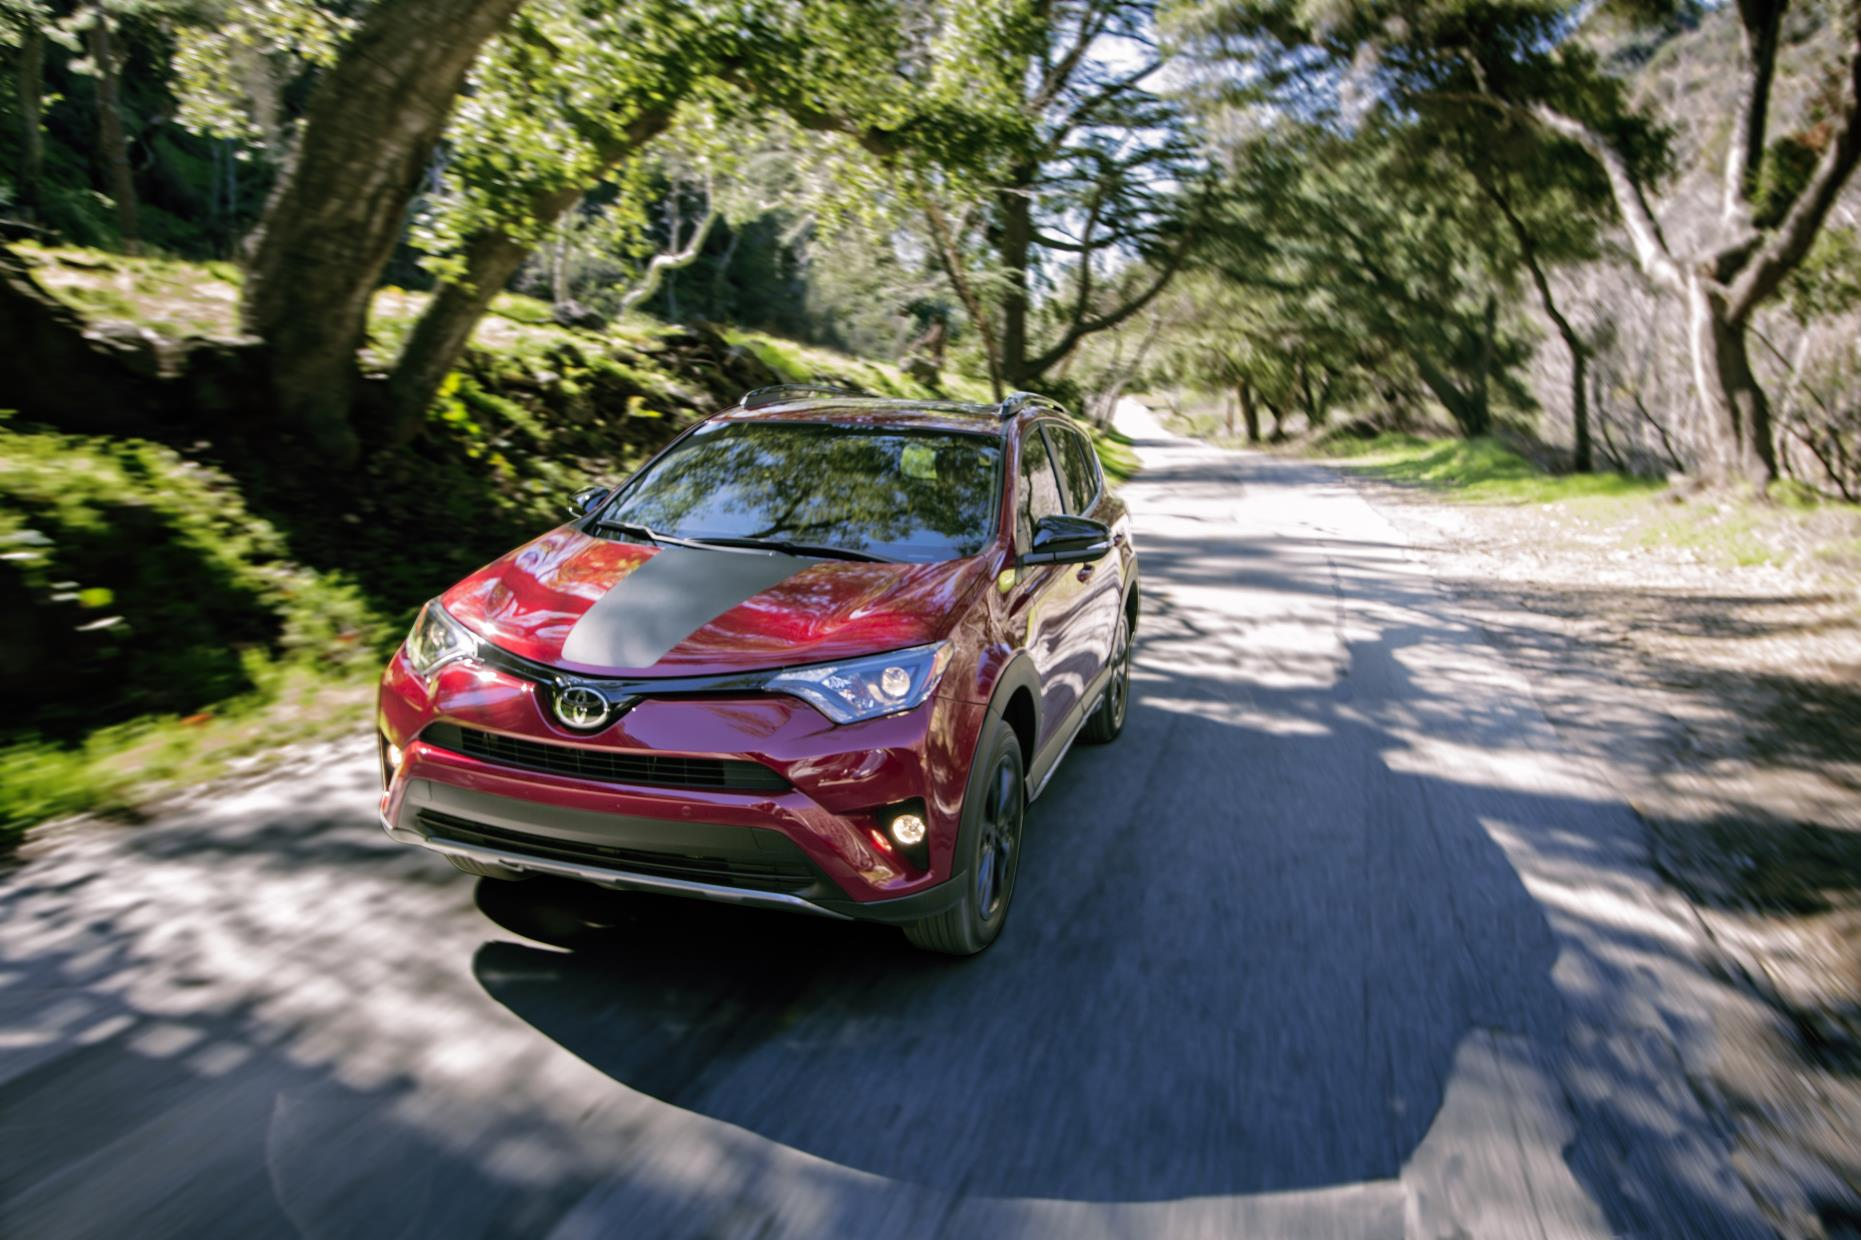 Toyota RAV4, one of Toyota's's top selling vehicles in the USA in 2017